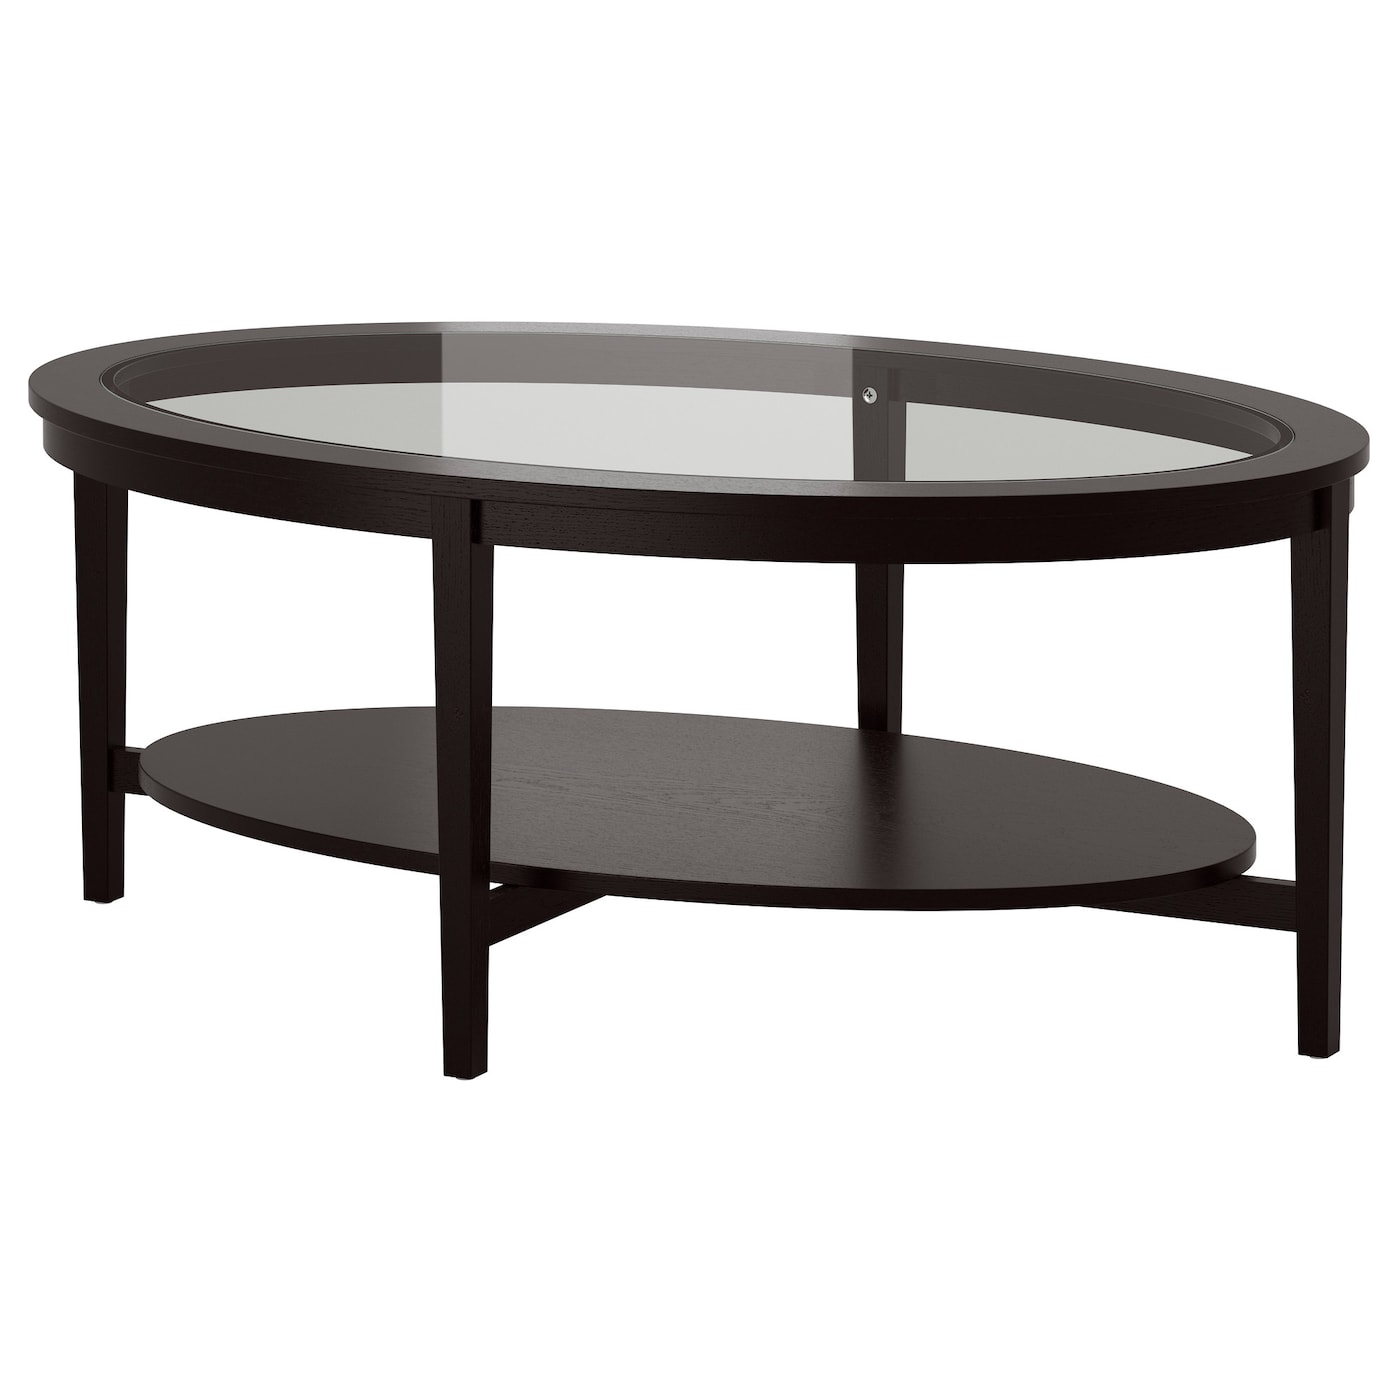 Malmsta coffee table black brown 130x80 cm ikea - Petite table de salon ikea ...